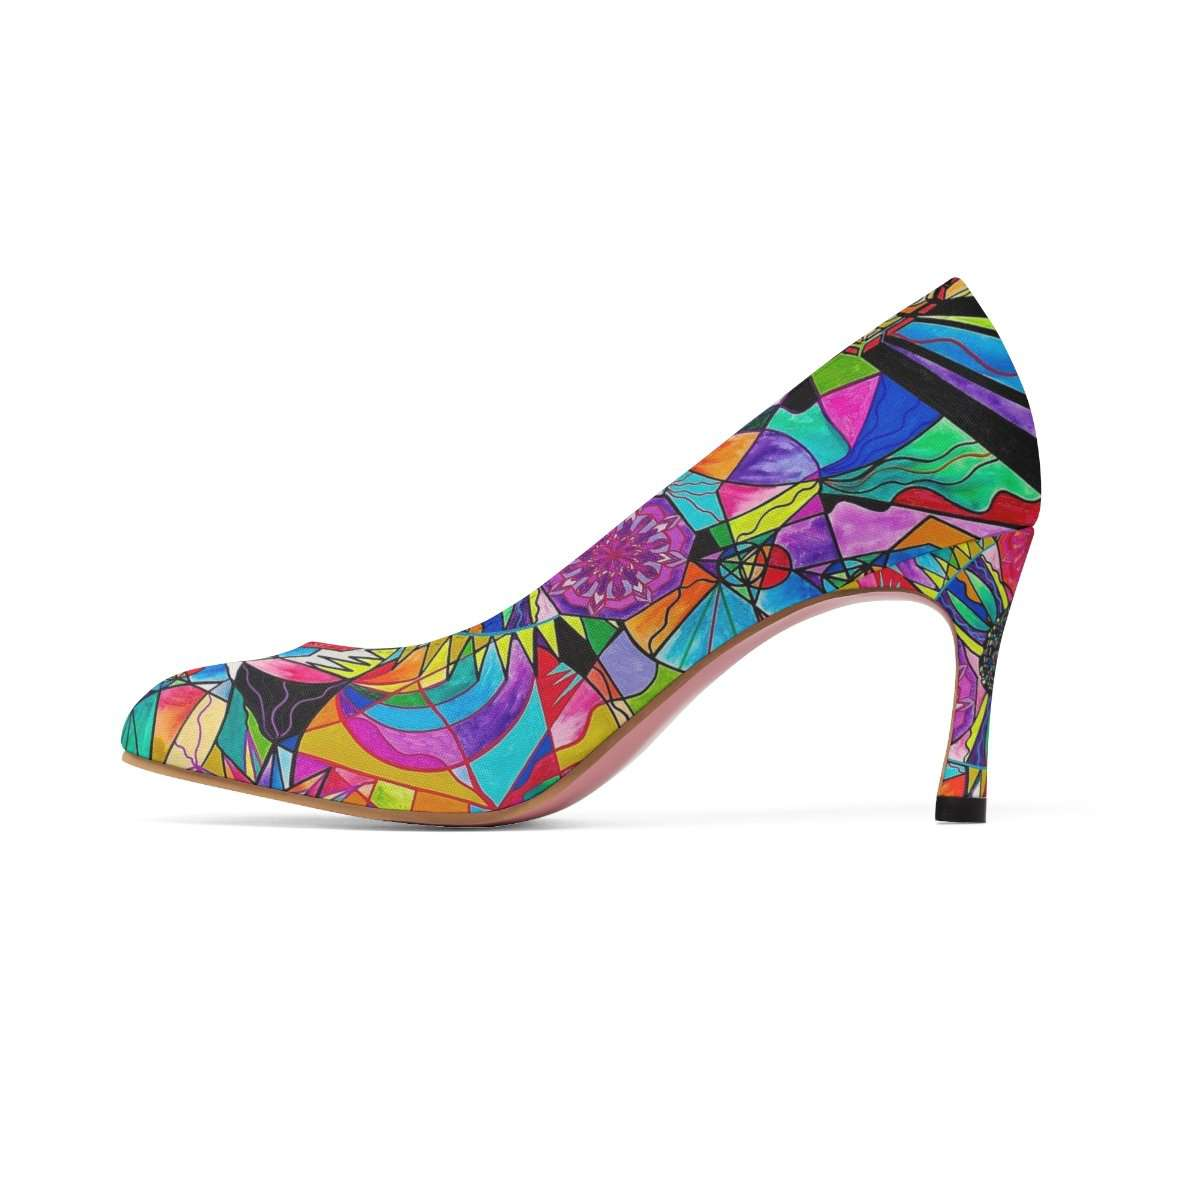 Positive Intention - Women's High Heels